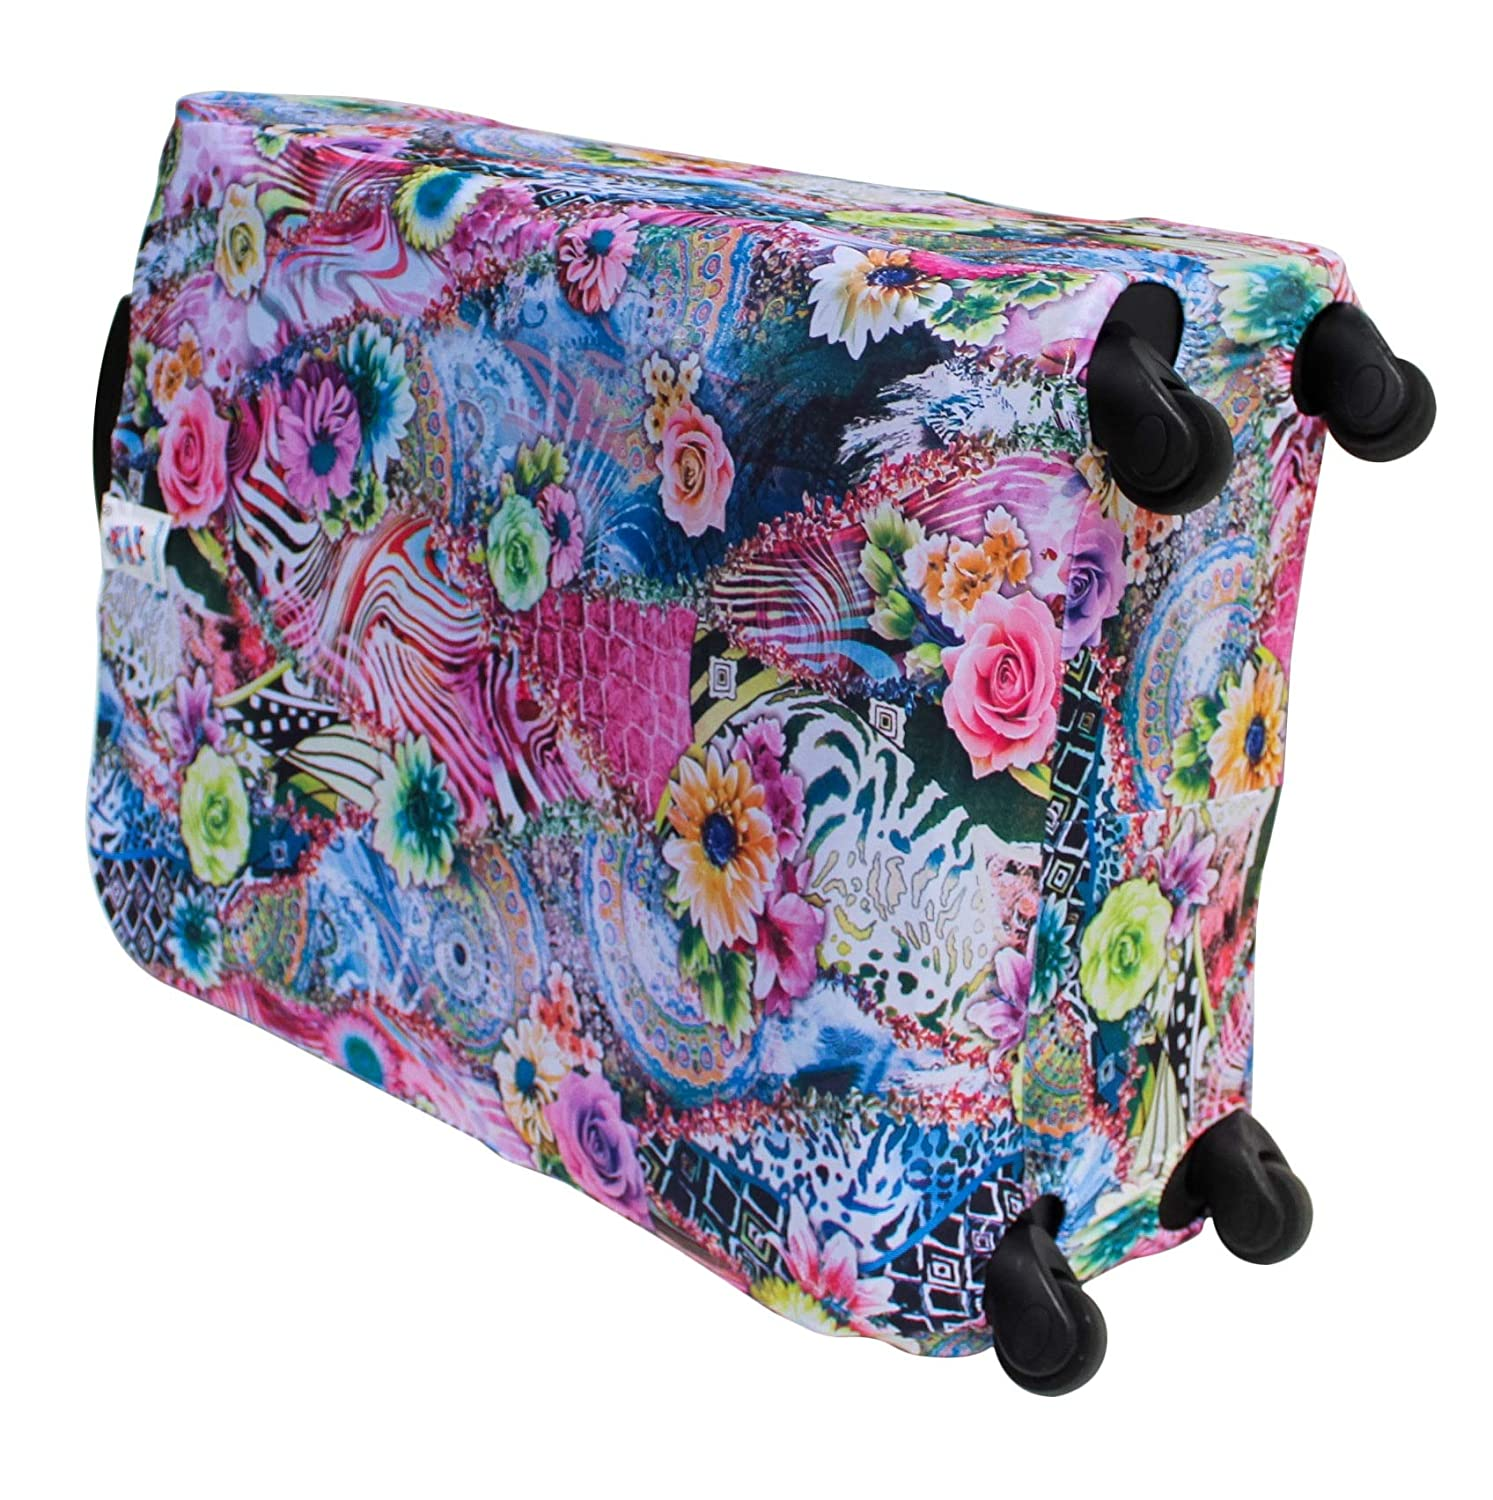 Green Whimsical Suitable for suitcases 15 to 18 by 23 to 26 or 40 to 48cm by 60 to 65cm Medium Snuggage Luggage Cover